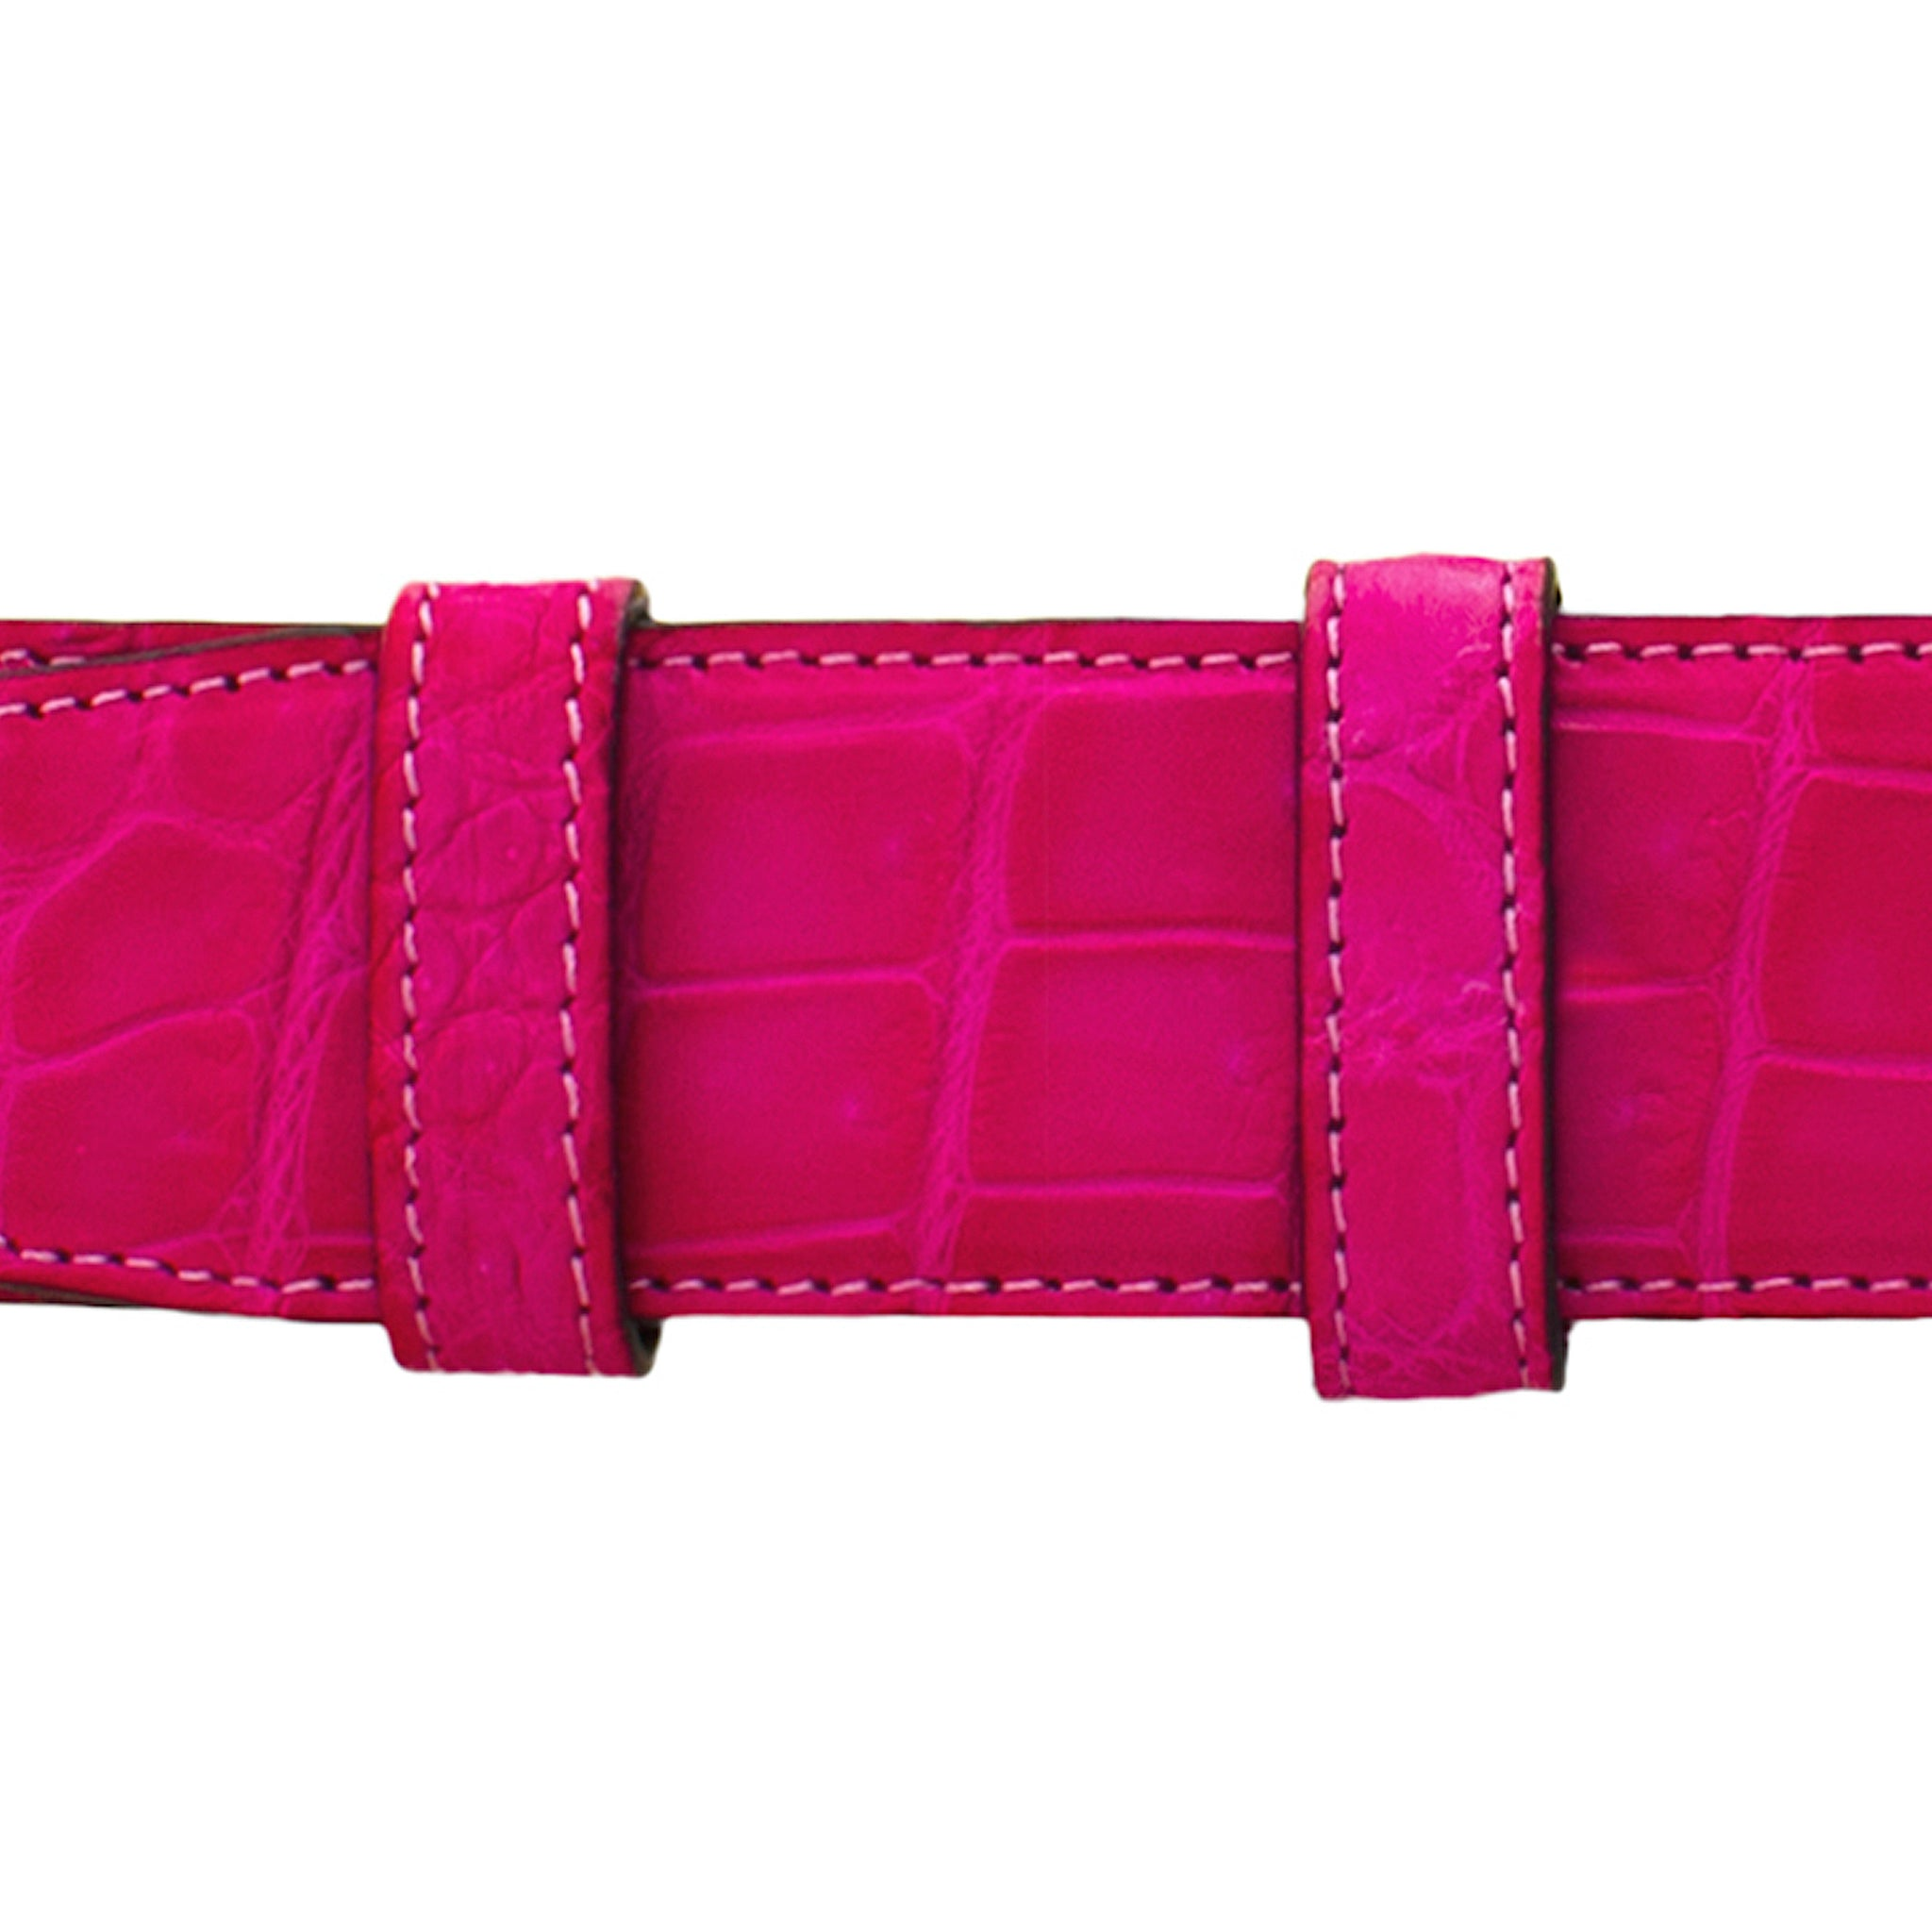 "1 1/4"" Fuchsia Seasonal Belt with Denver Casual Buckle in Polished Nickel"